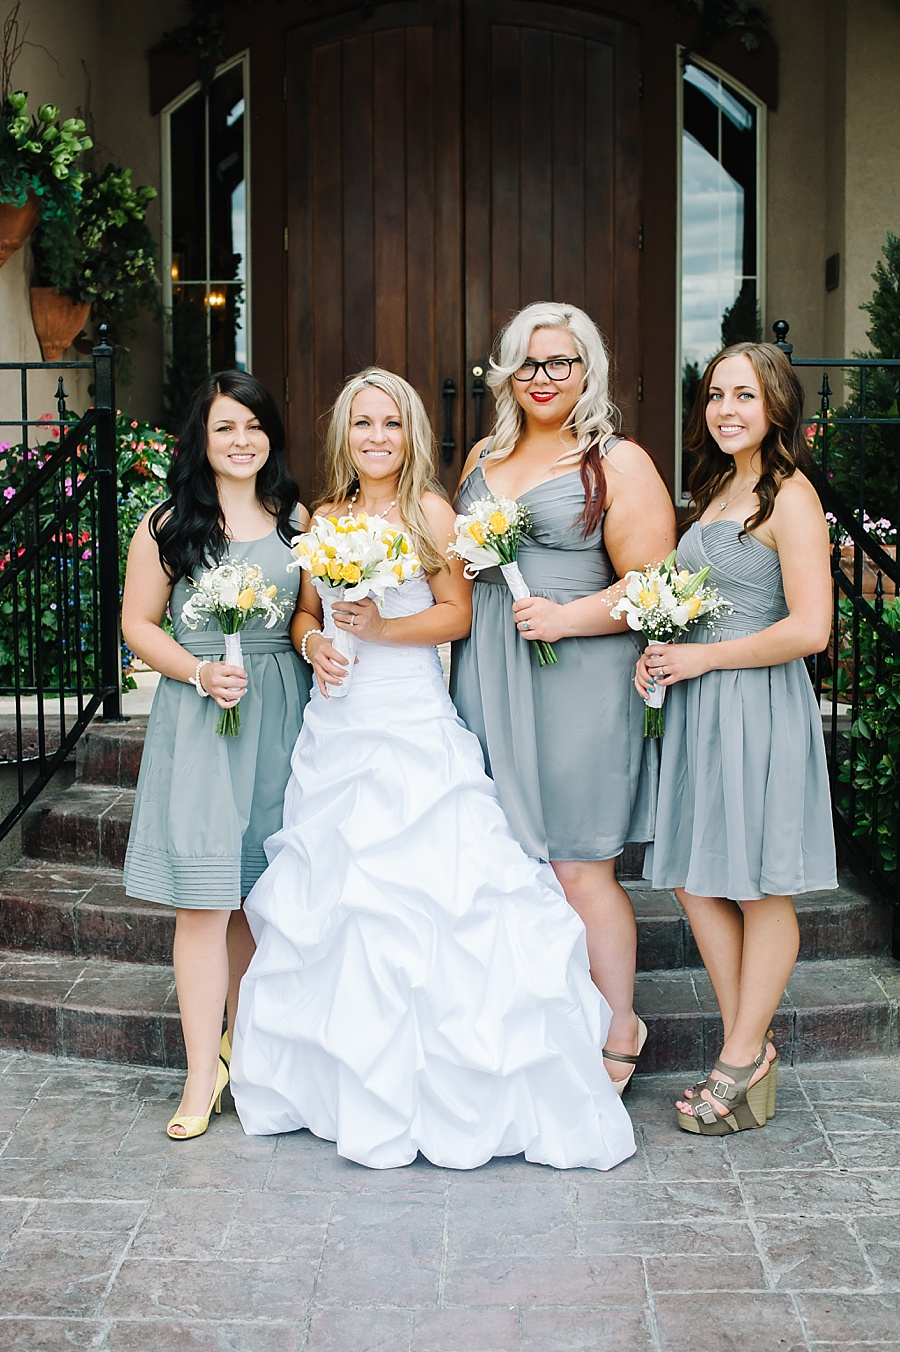 SLC Wedding Photography Ali Sumsion 051